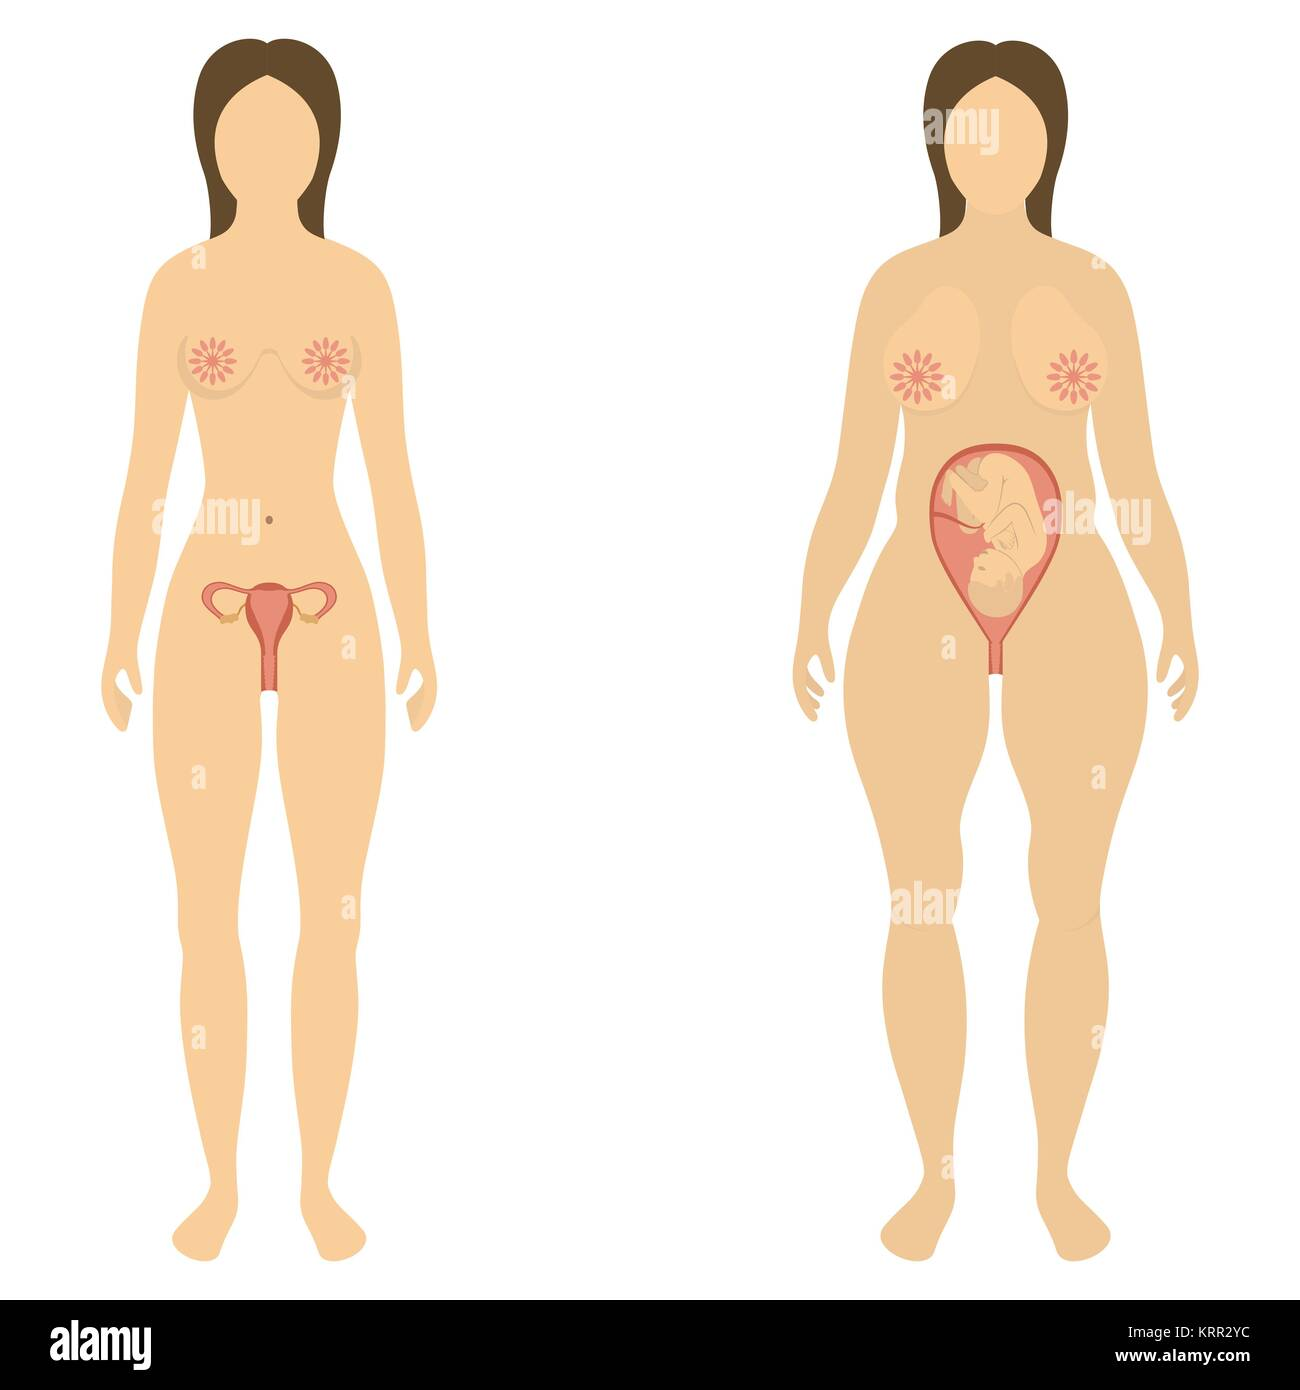 The woman before and during pregnancy - vector illustration - Stock Vector